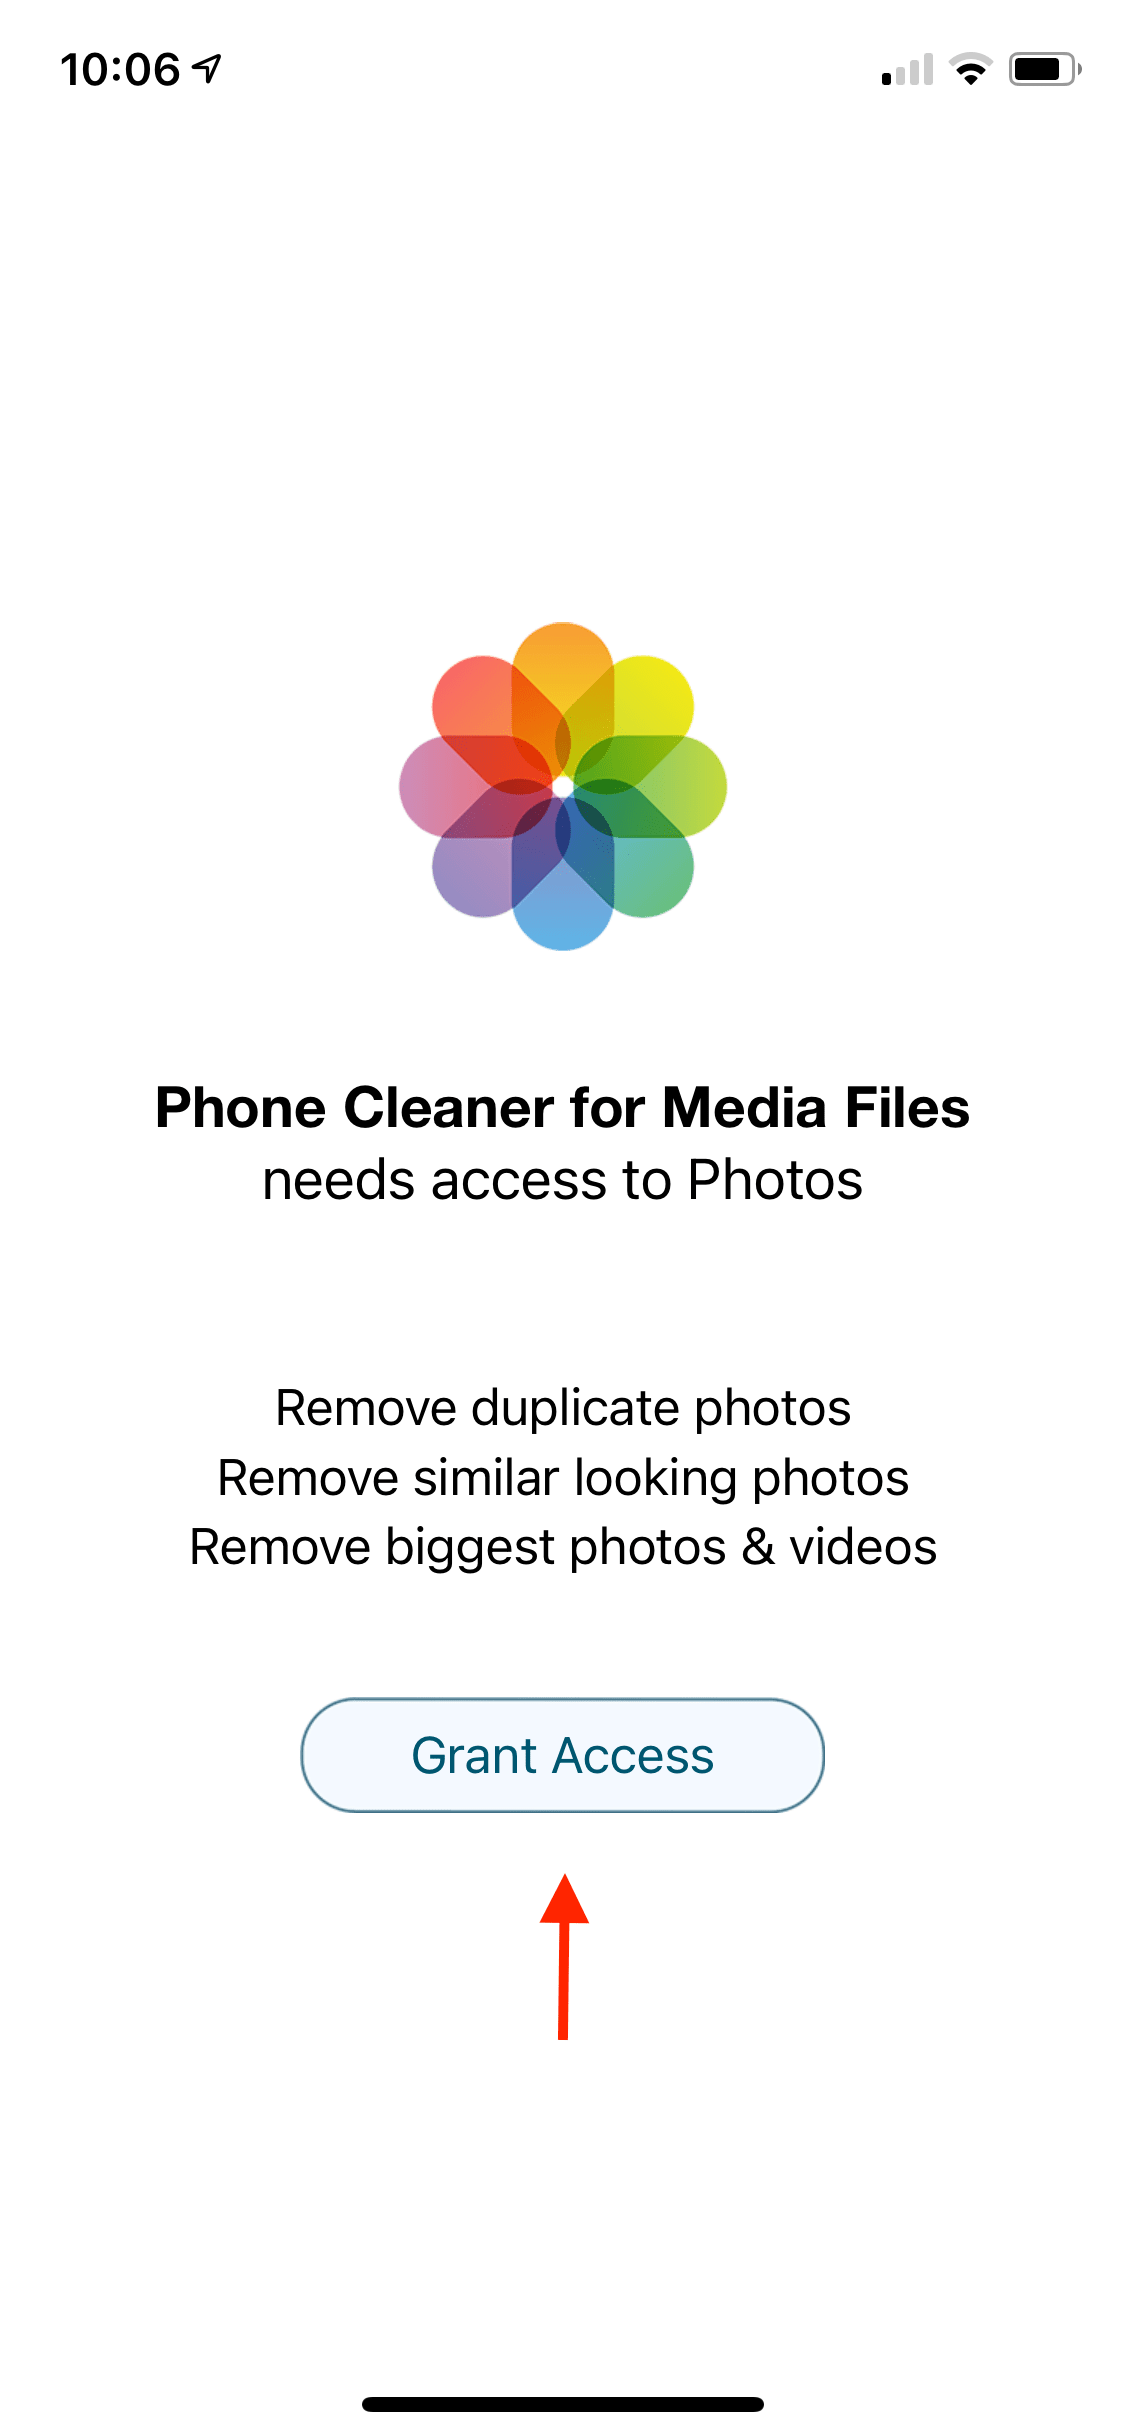 phone cleaner grant access photos